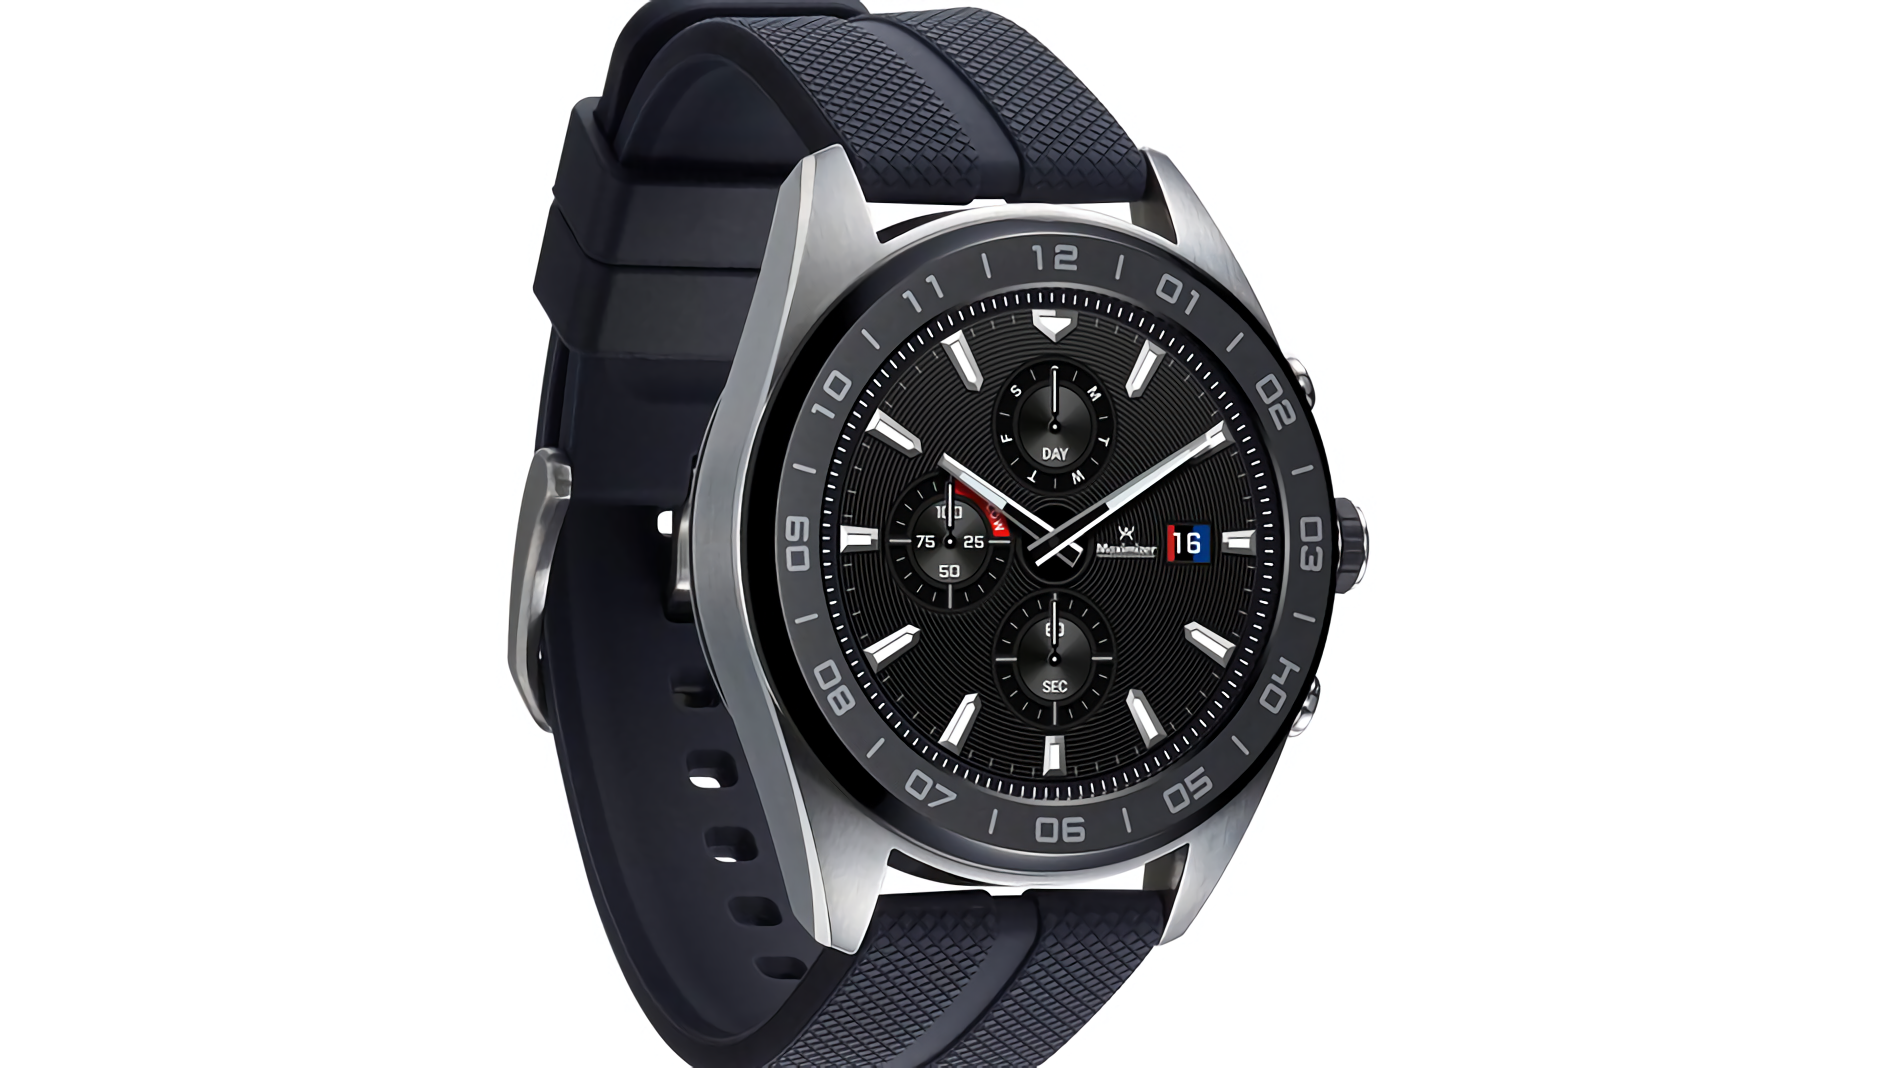 LG's Watch W7 smartwatch promises 100 days of battery life ...